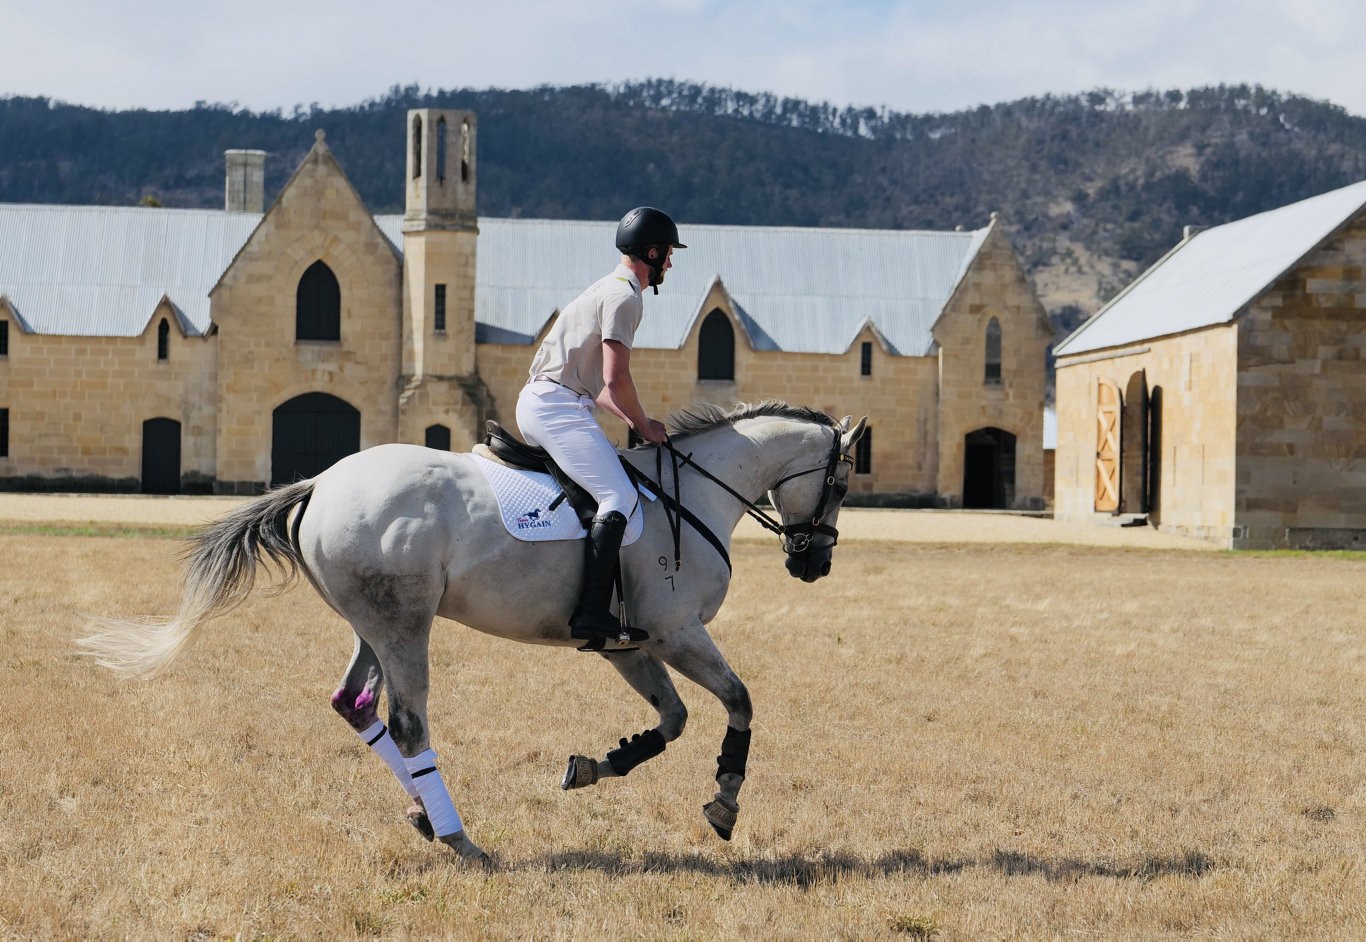 Polo is one of the many offerings for tourist at the Shene Estate in Tasmania.